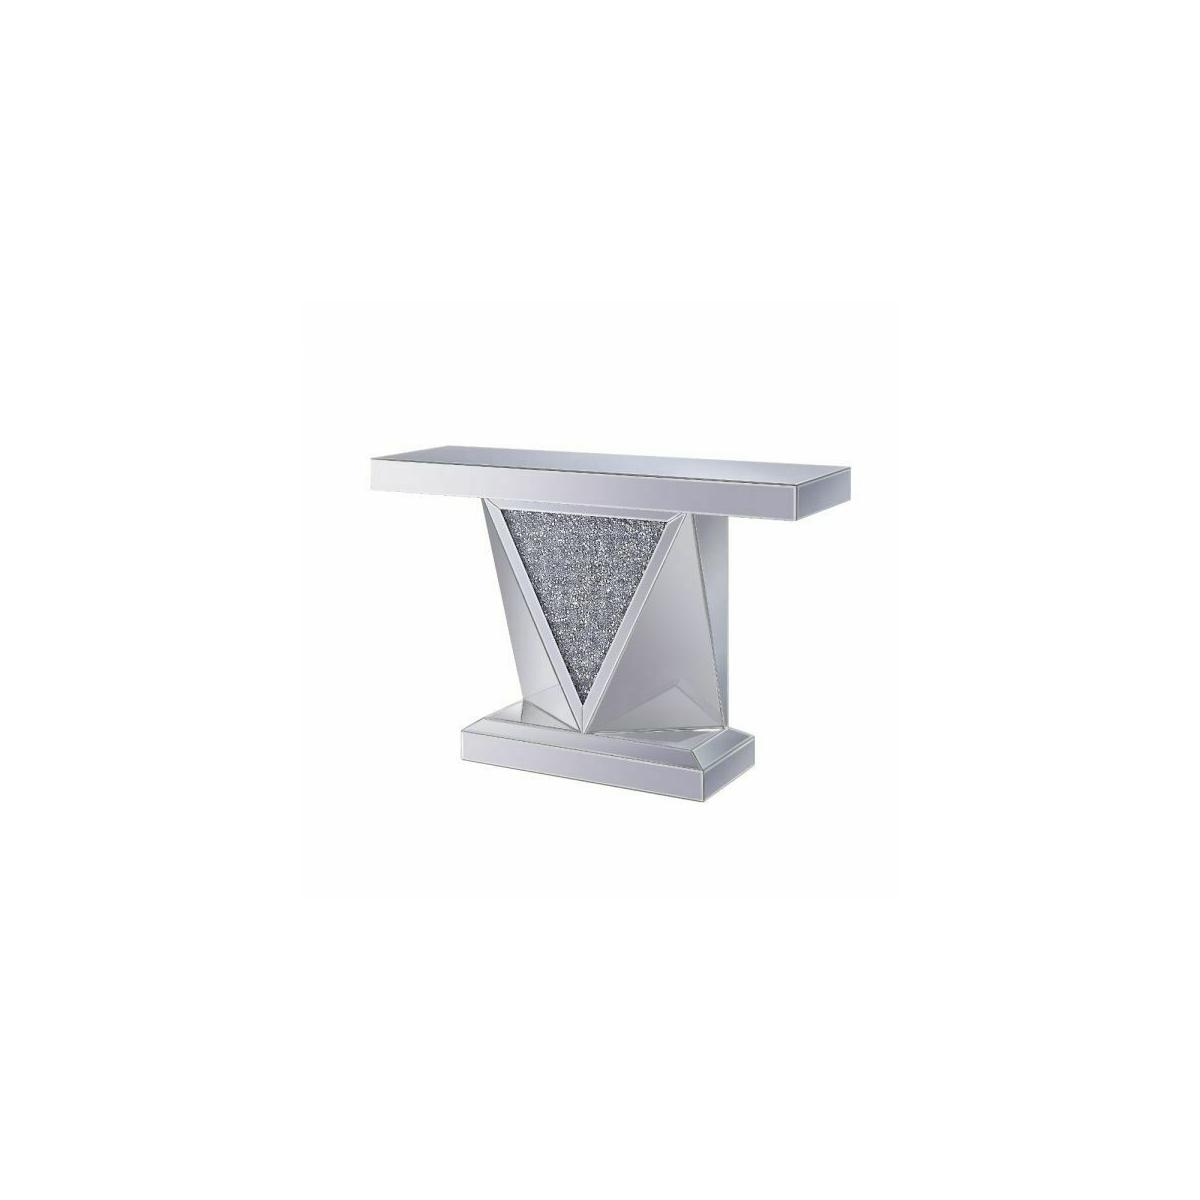 ACME Noralie Console Table - 90448 - Mirrored & Faux Diamonds